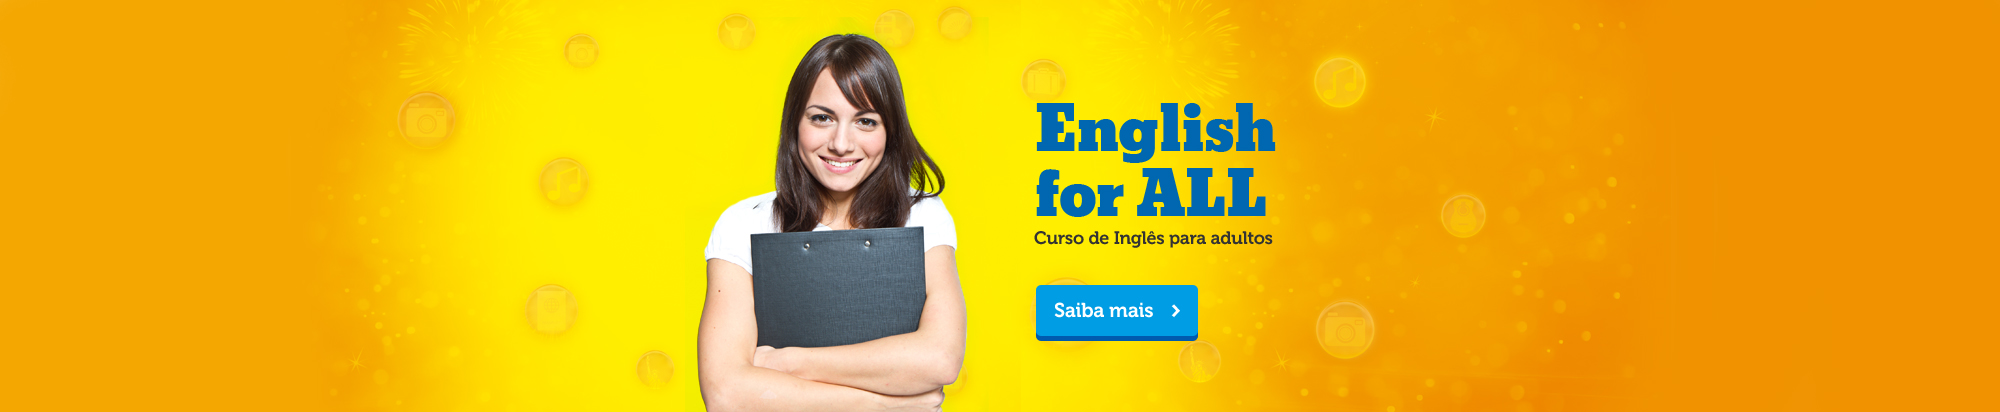 banner_home_ingles_adulto